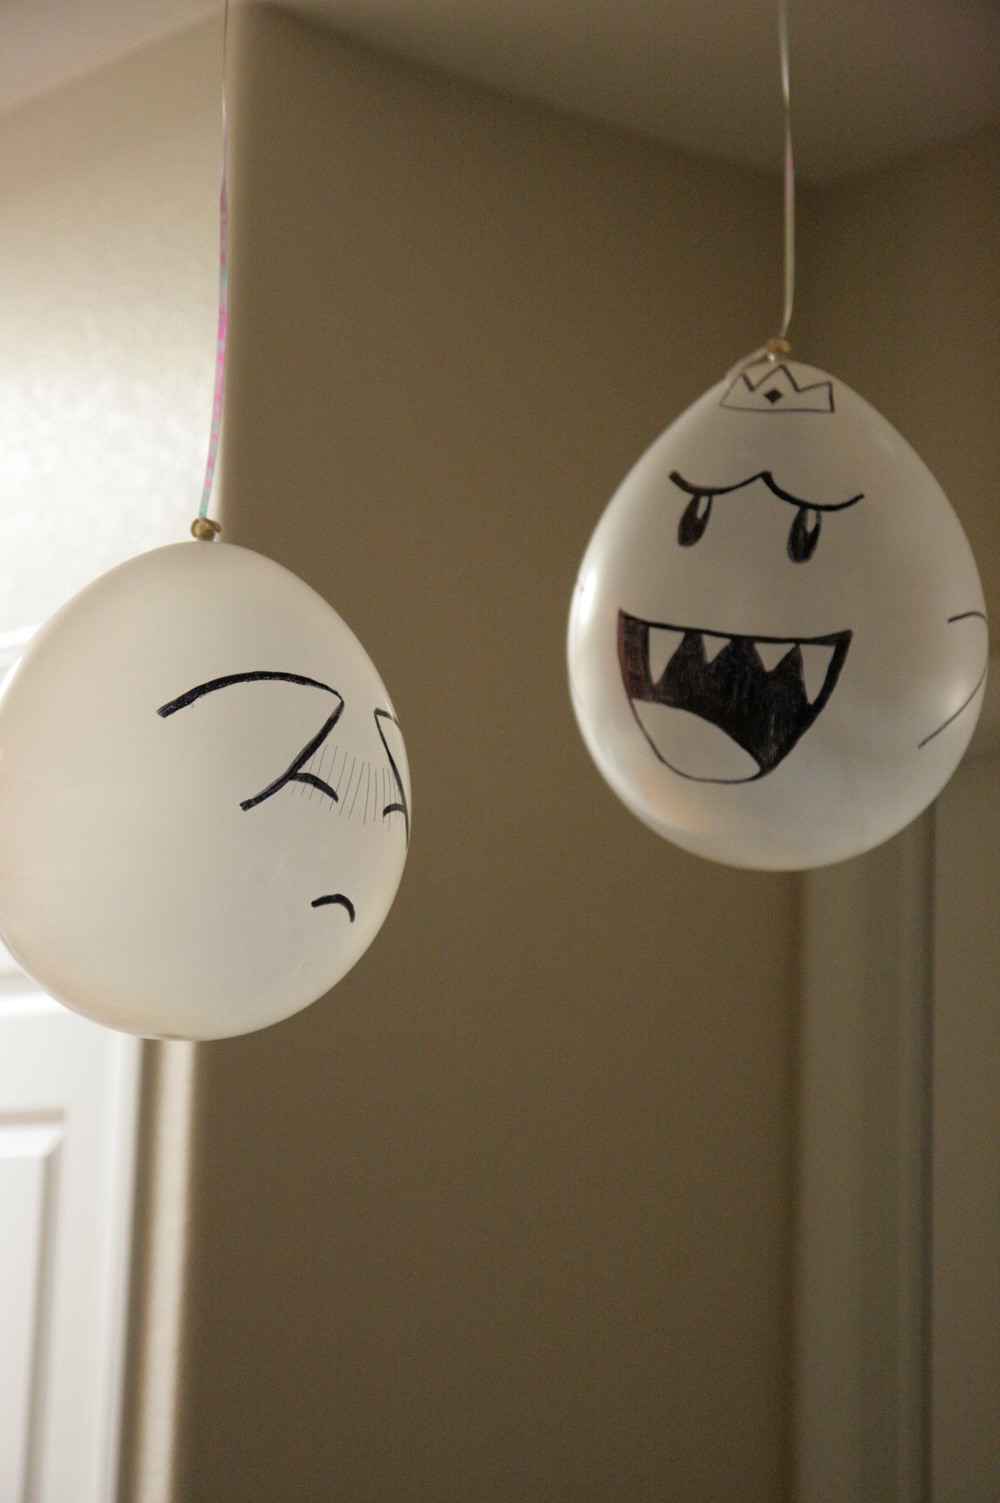 boos as balloons